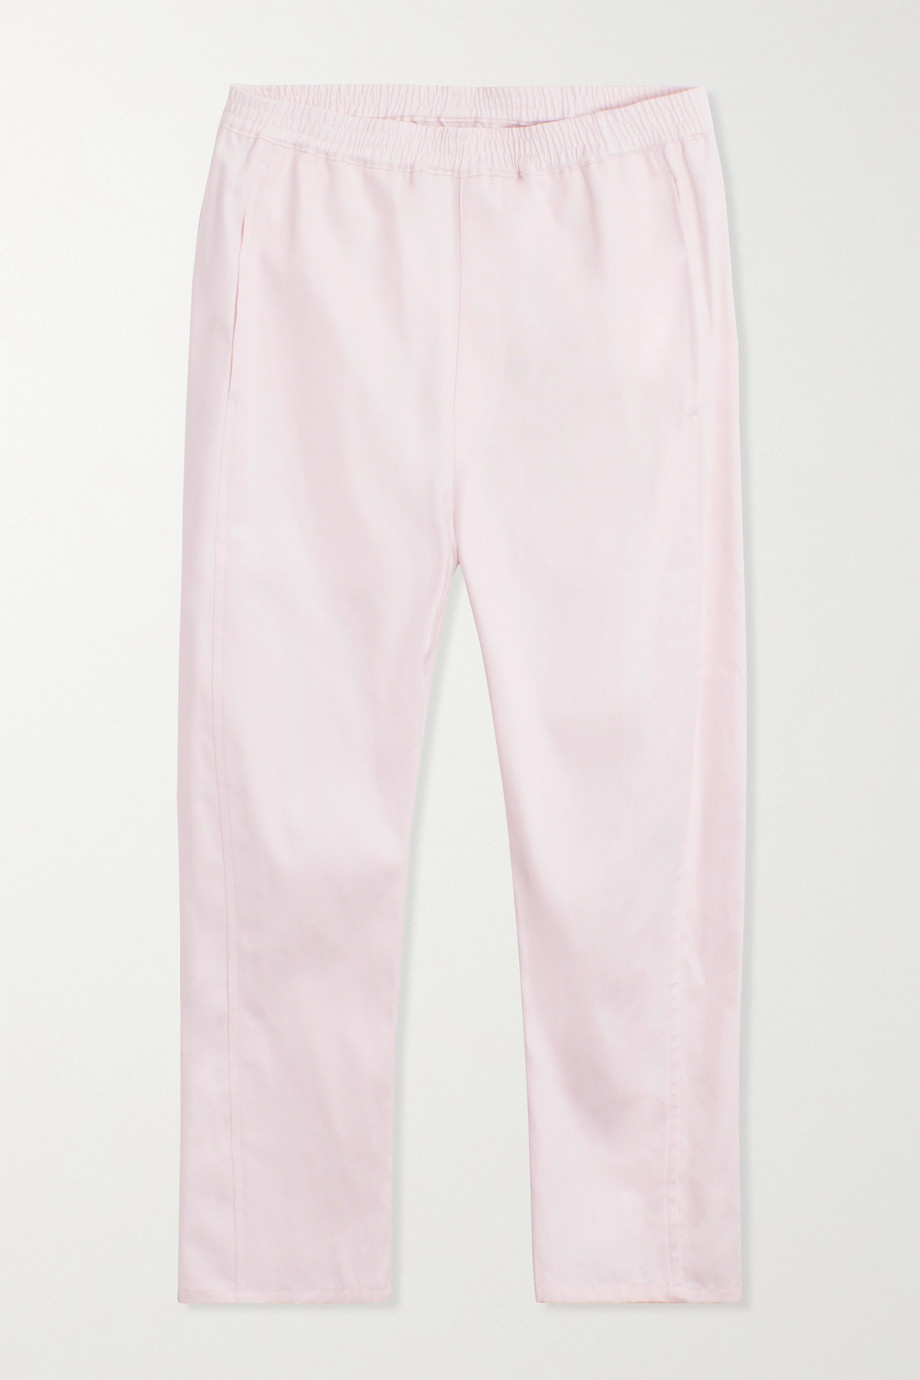 Paradised Umi cotton tapered pants